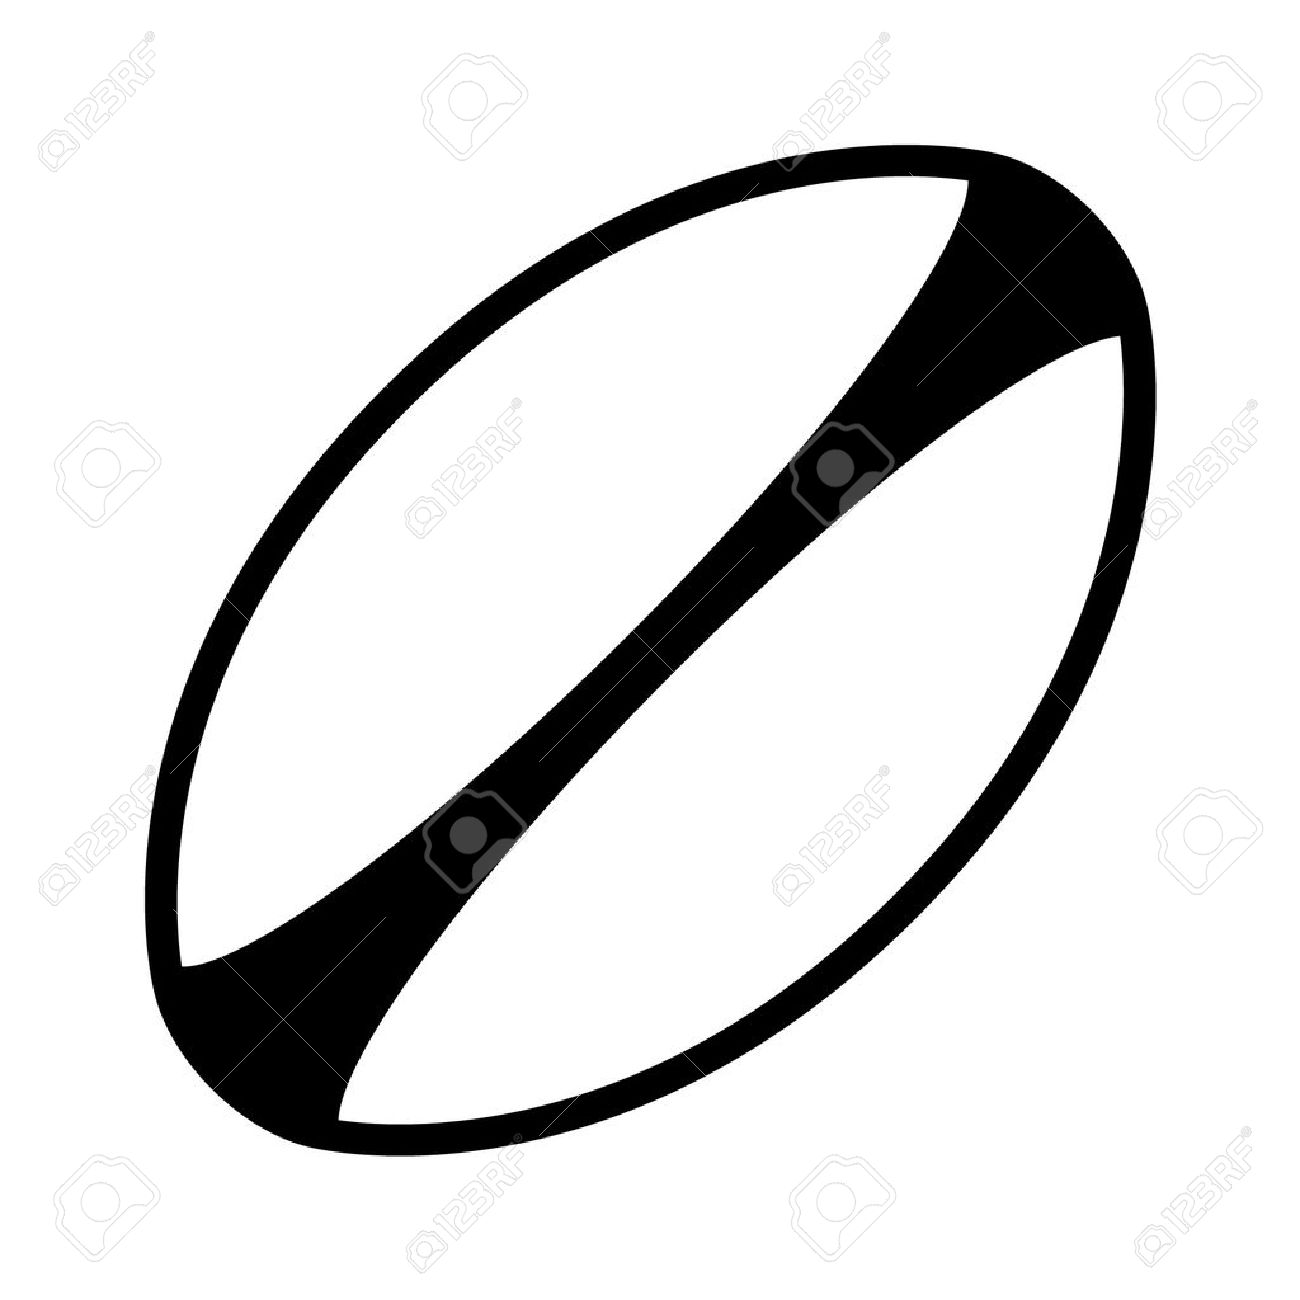 white rugby ball with stripes line art icon royalty free cliparts rh 123rf com rugby ball clipart black and white rugby league ball clipart